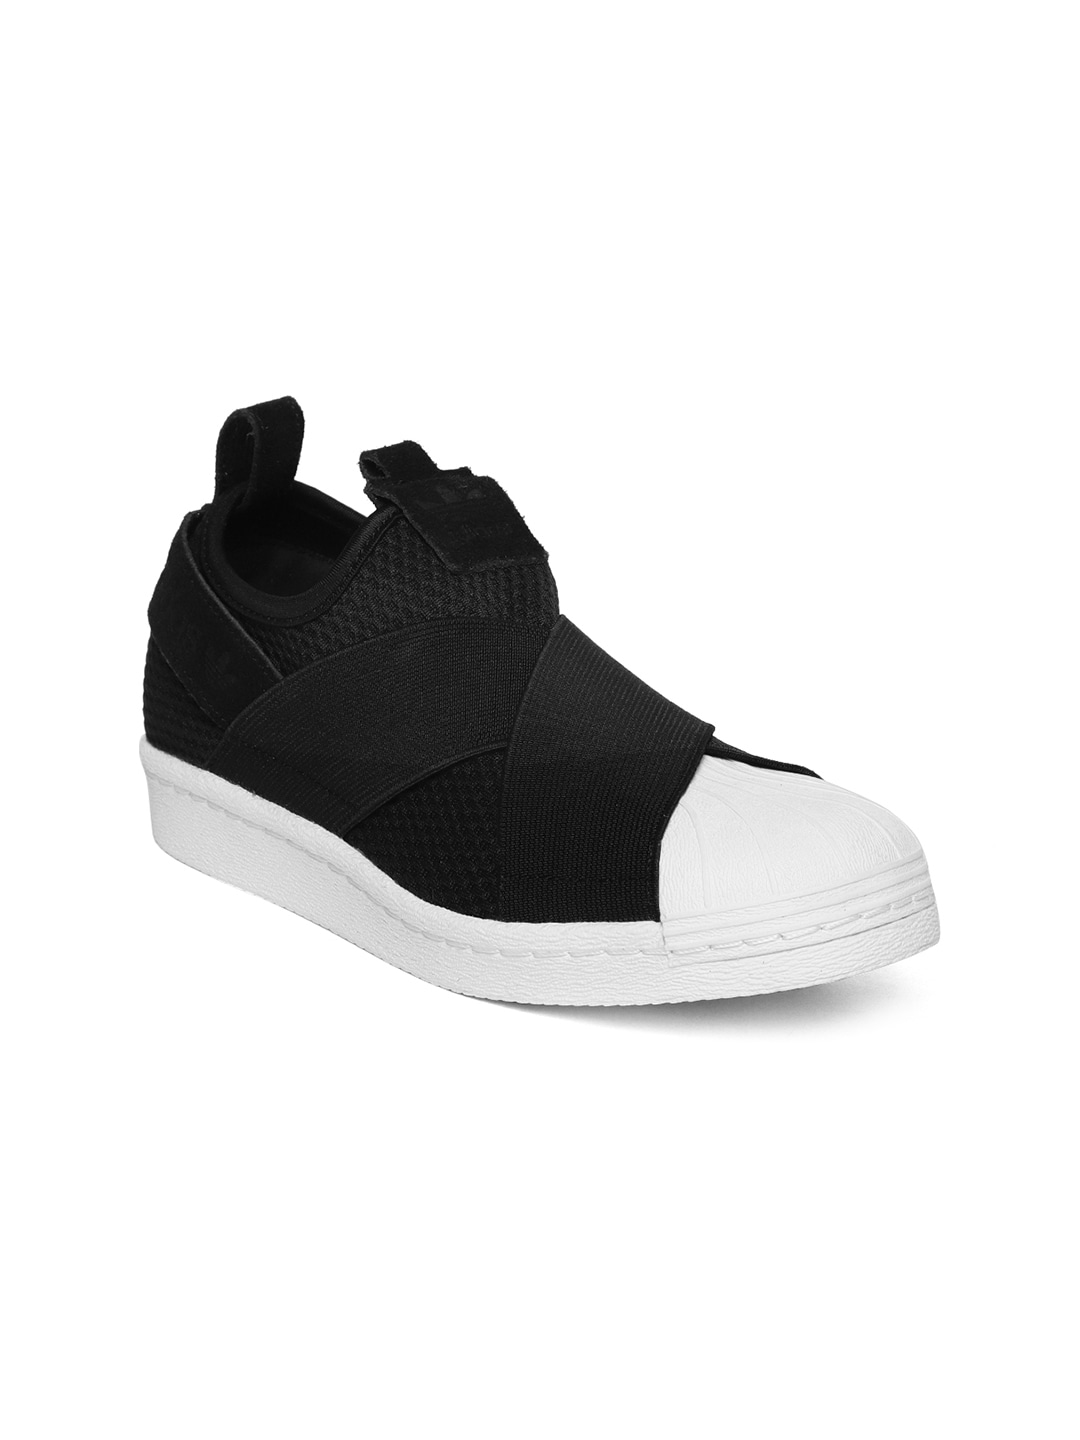 321877eaae Adidas White Shoes - Buy Adidas White Shoes Online in India